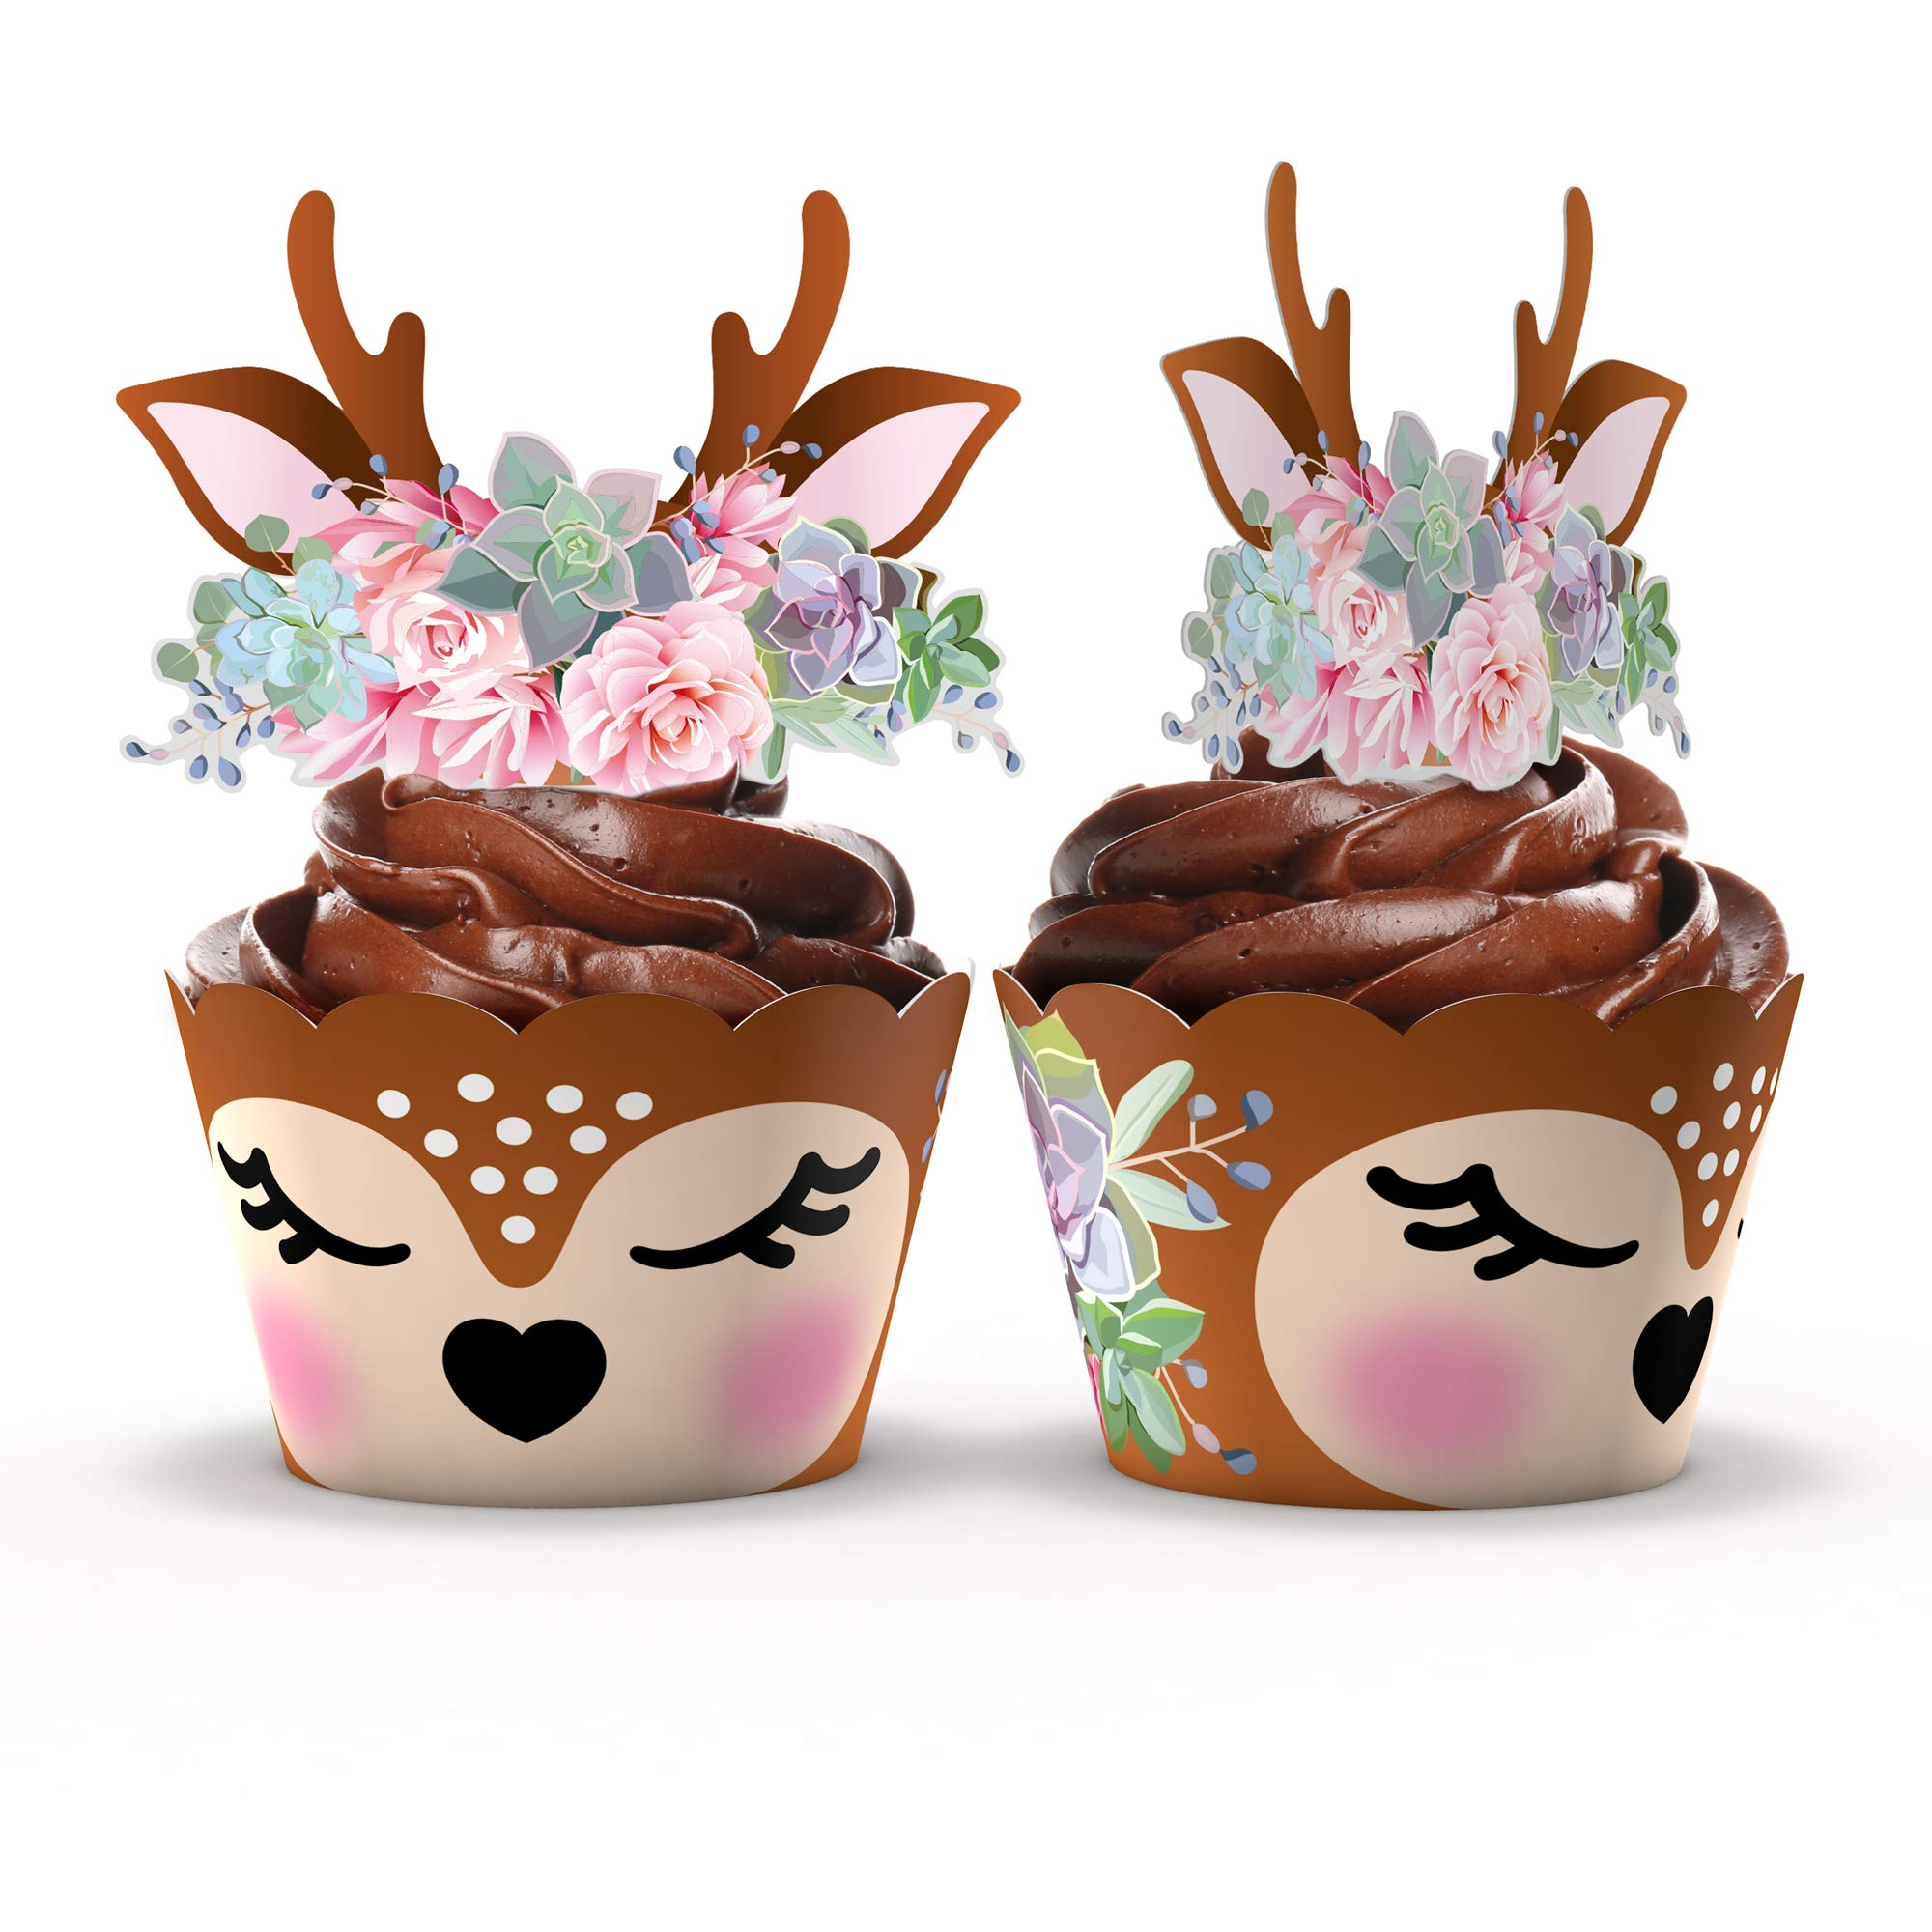 Woodland Baby Shower Cupcake Wrappers And Toppers 24 Sets Woodland Deer Birthday Party Decorations Wild One Party Supplies Woodland Deer